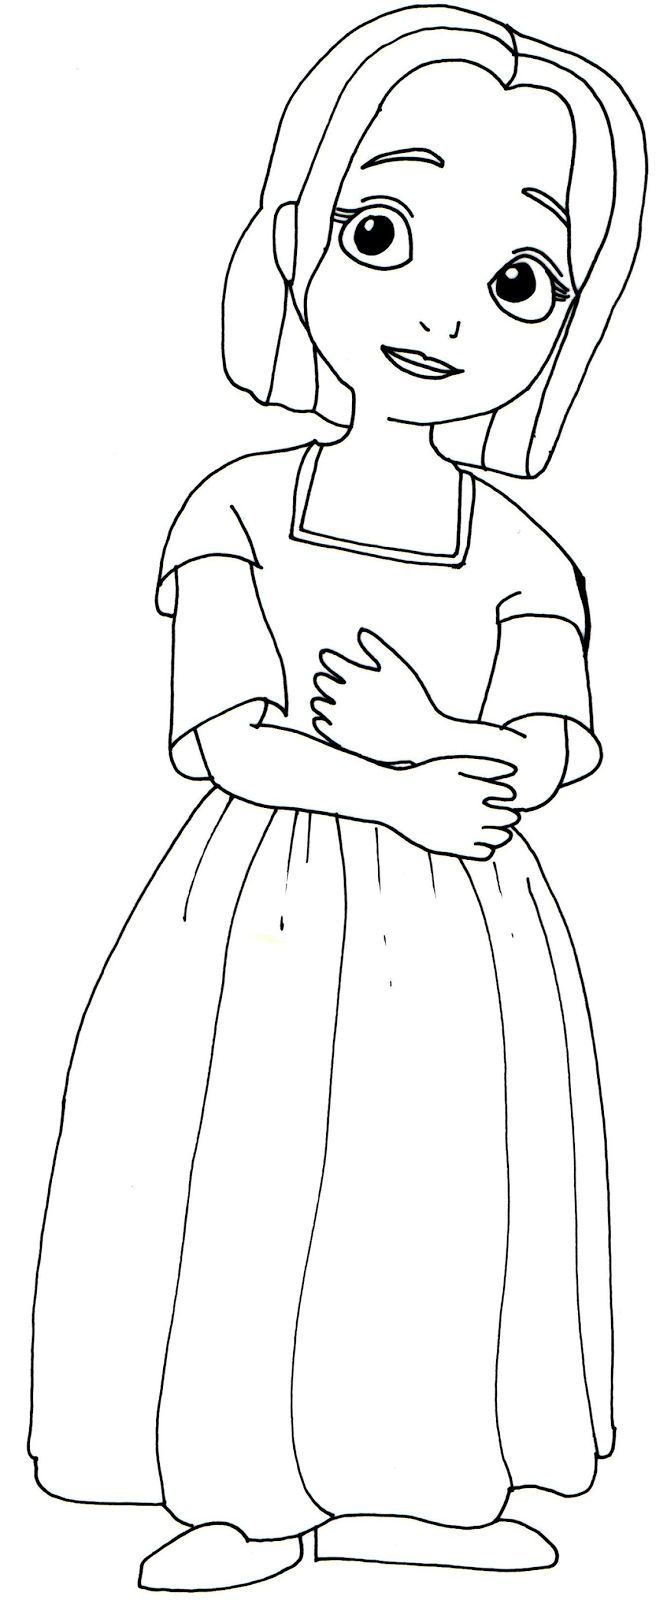 sofia the first coloring pages jade - Sofia Coloring Pages